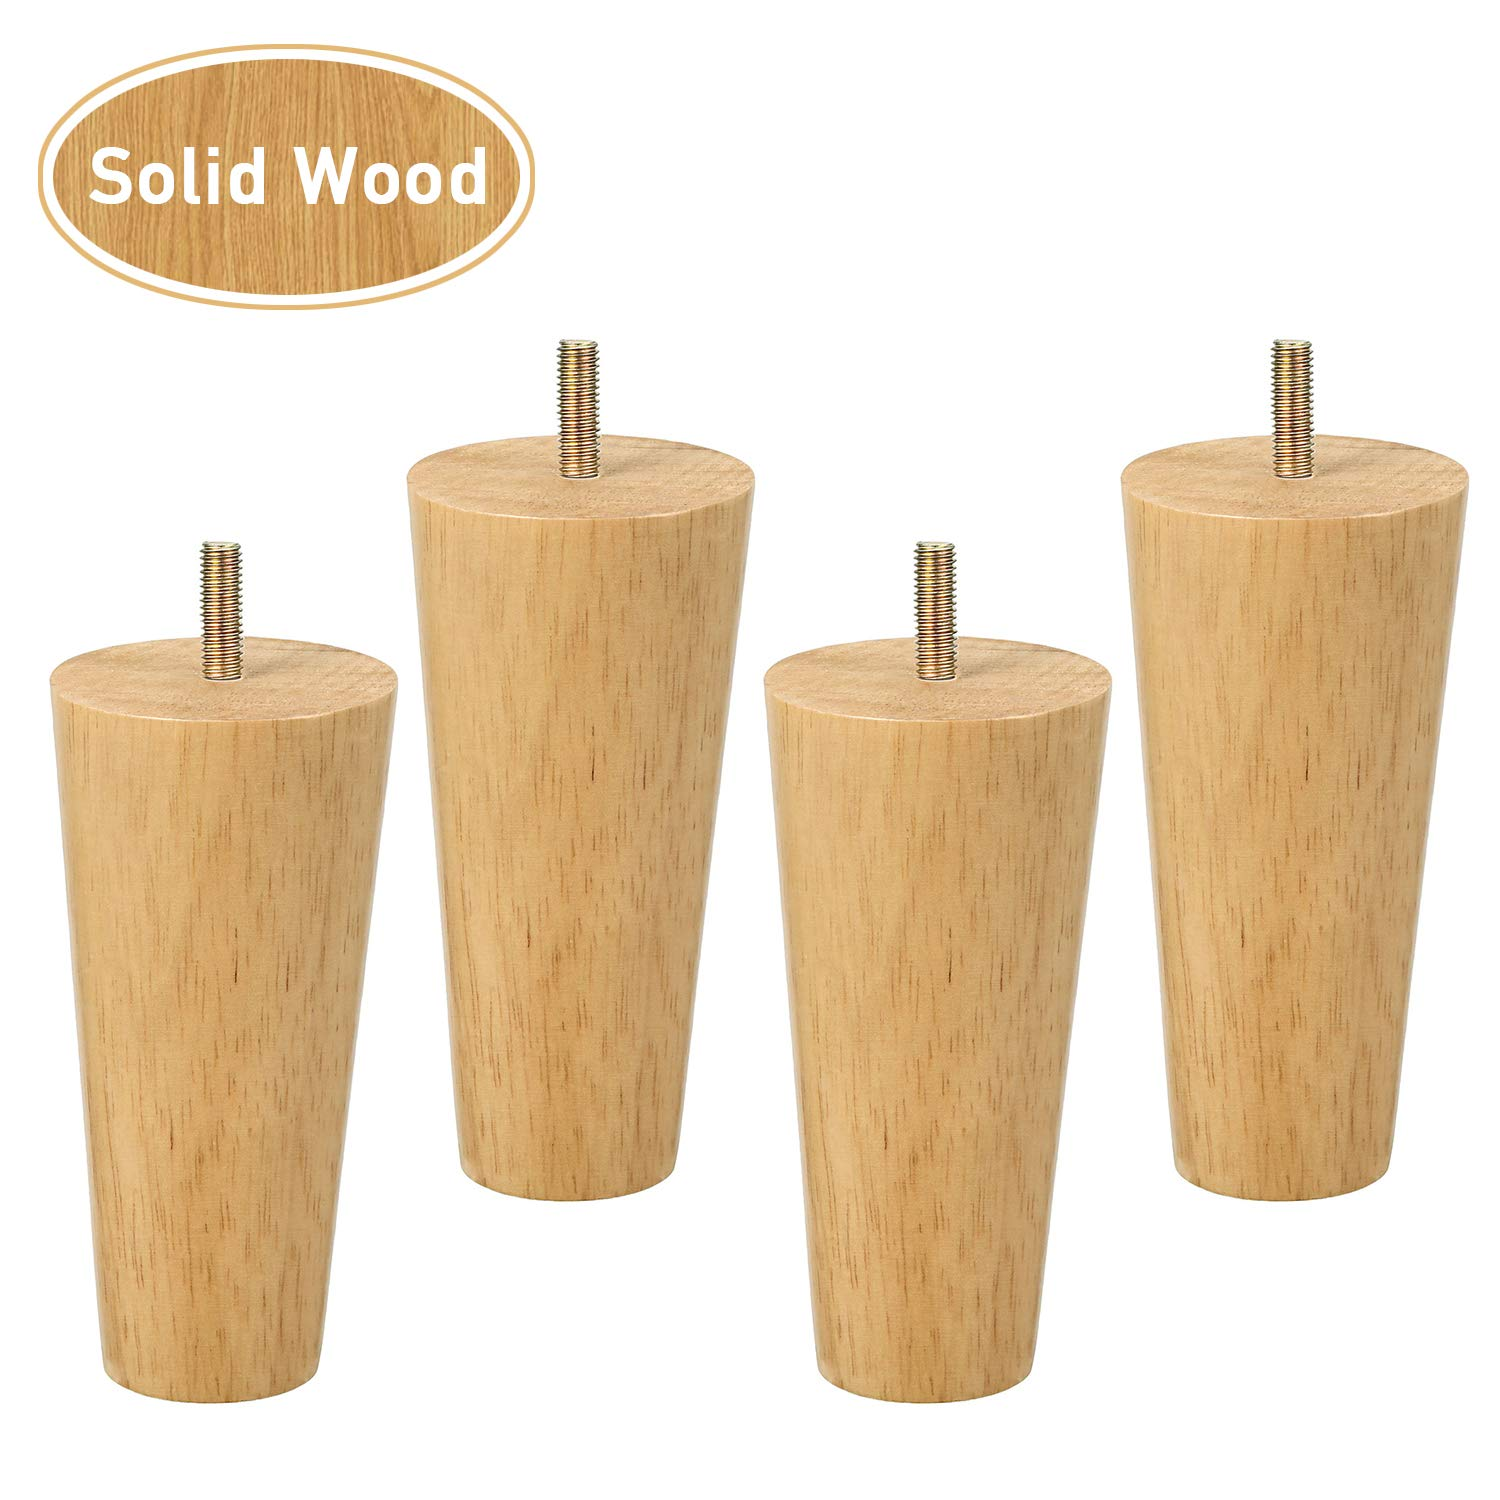 One Sight Dresser Legs Wood Furniture Legs Sofa Legs, 5 inch Mid Century  Sofa Legs for Armchair,Cabinet, Couch, Set of 4